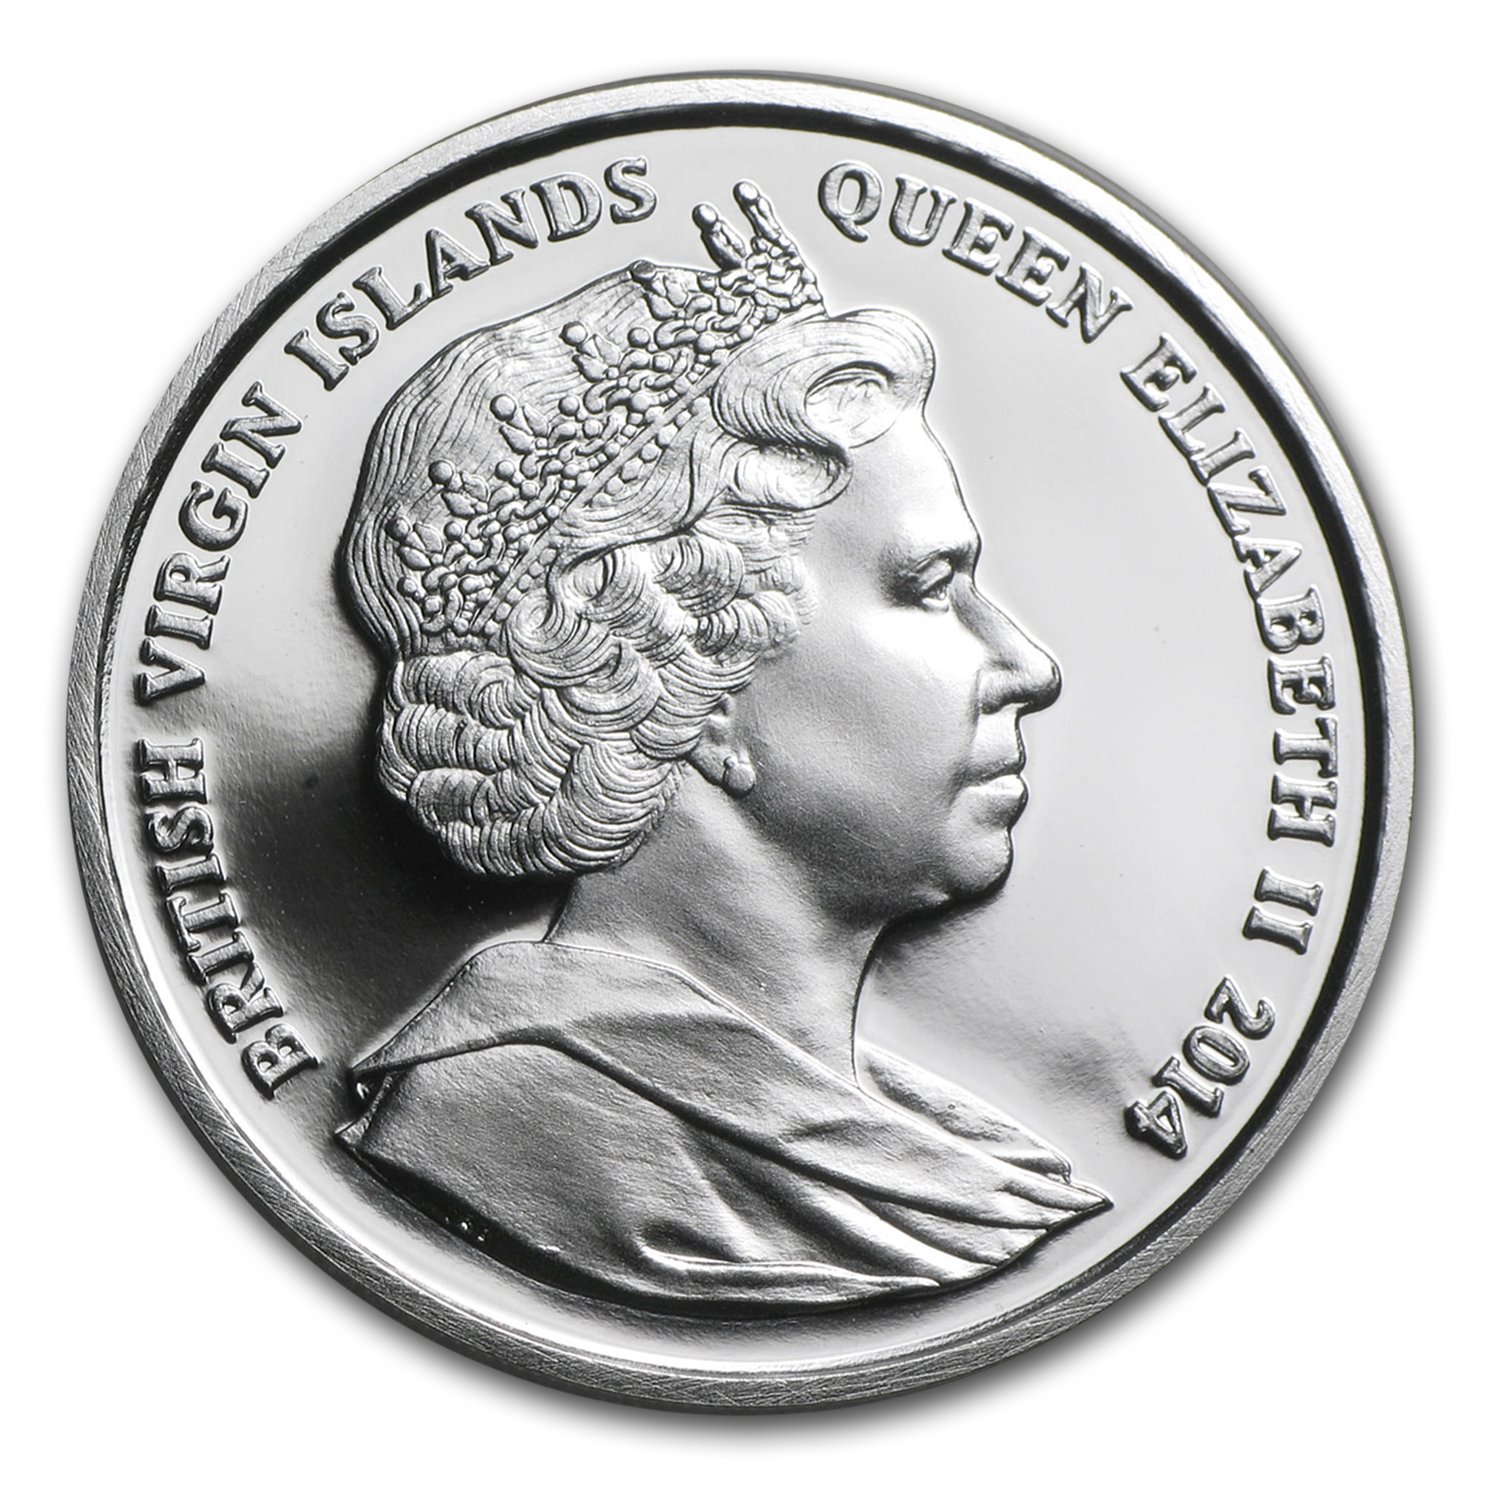 British Virgin Islands 2014 Silver Baby Coin